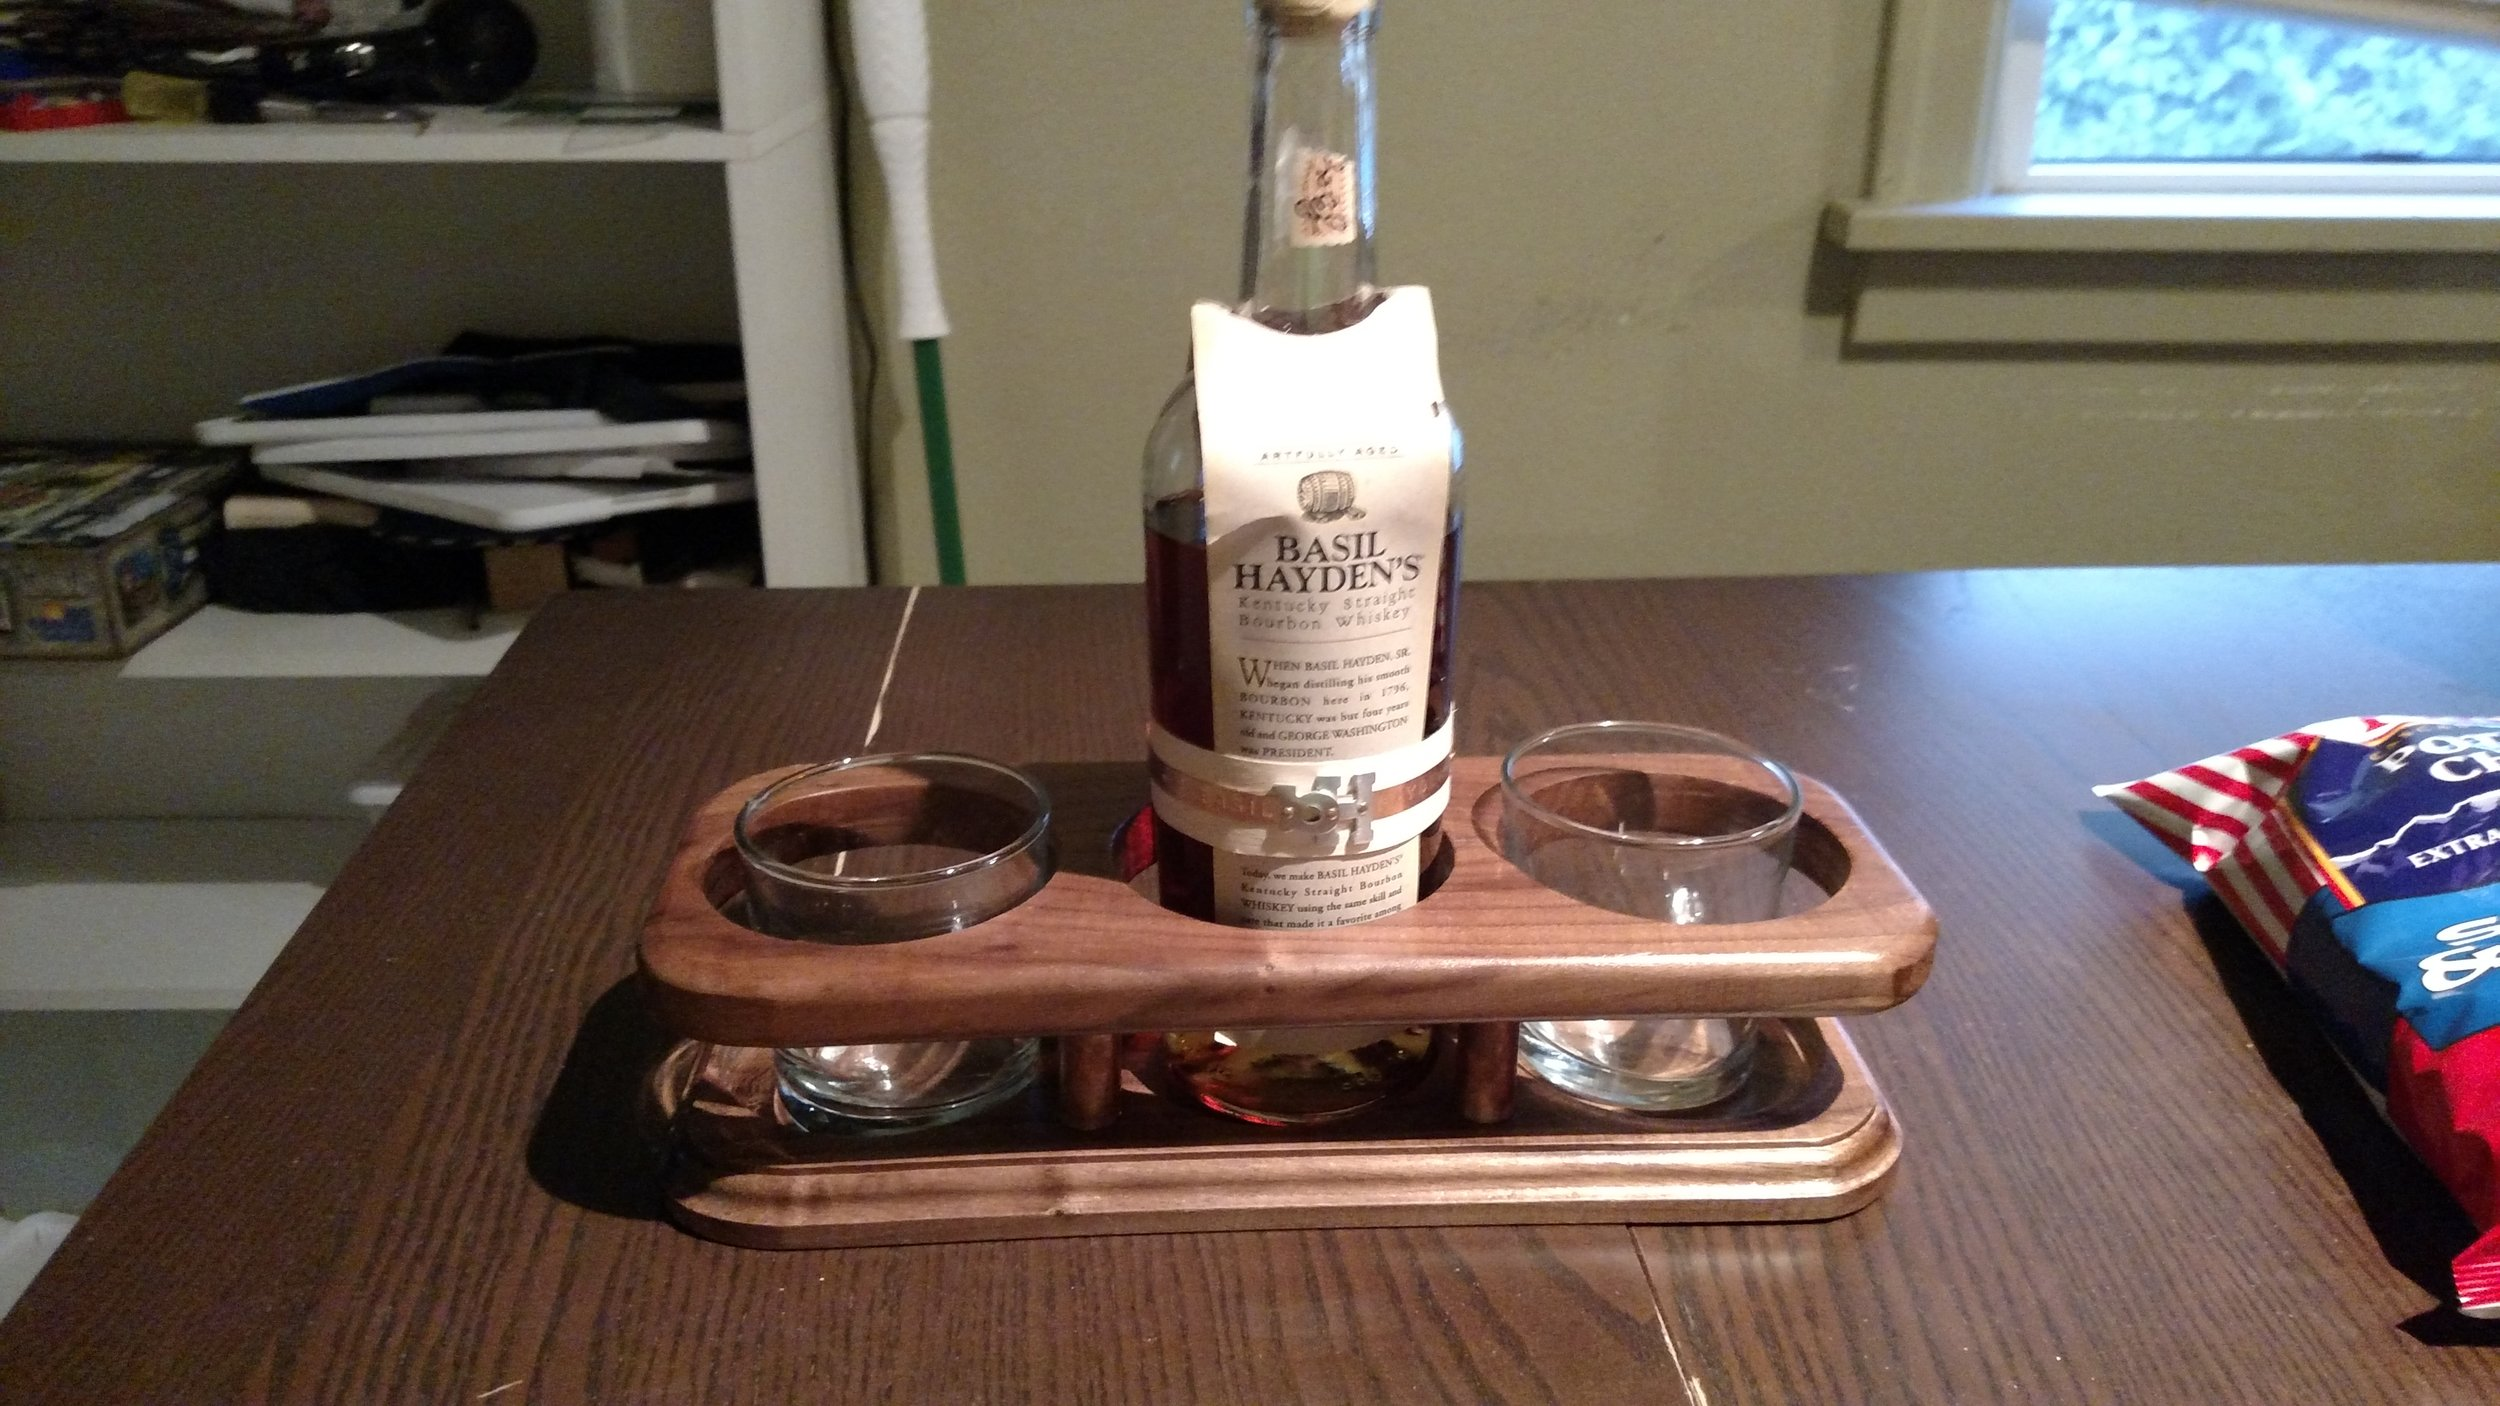 A whiskey holder that I made for my Uncles wedding. I had them try some good bourbon at my cousins wedding and they liked it quite a bit.